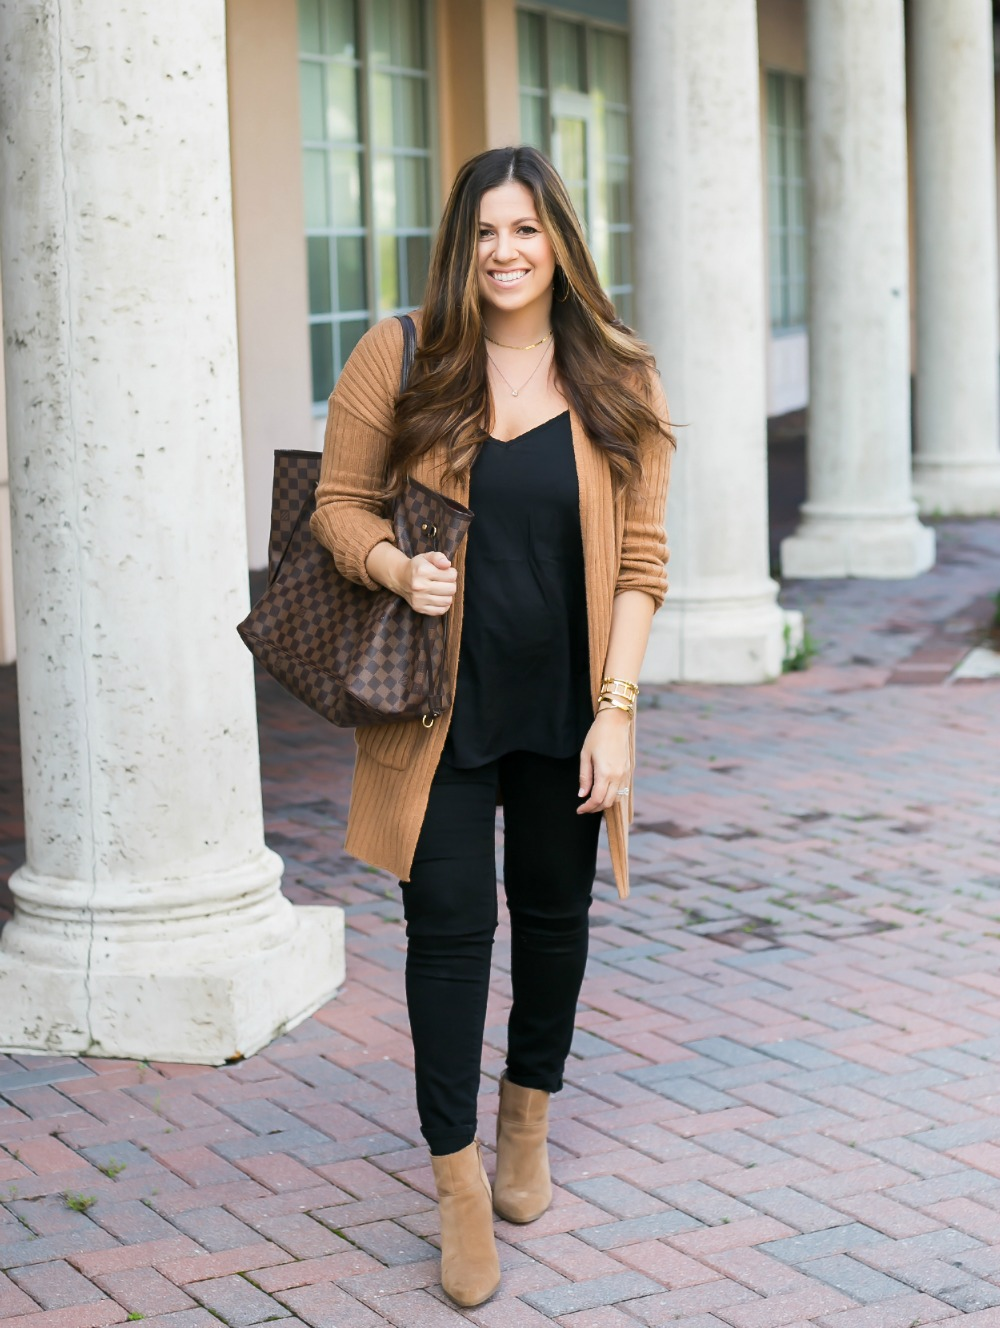 camel and black outfit for fall, styled by Florida Fashion blogger Jaime Cittadino of Sunflowers and Stilettos